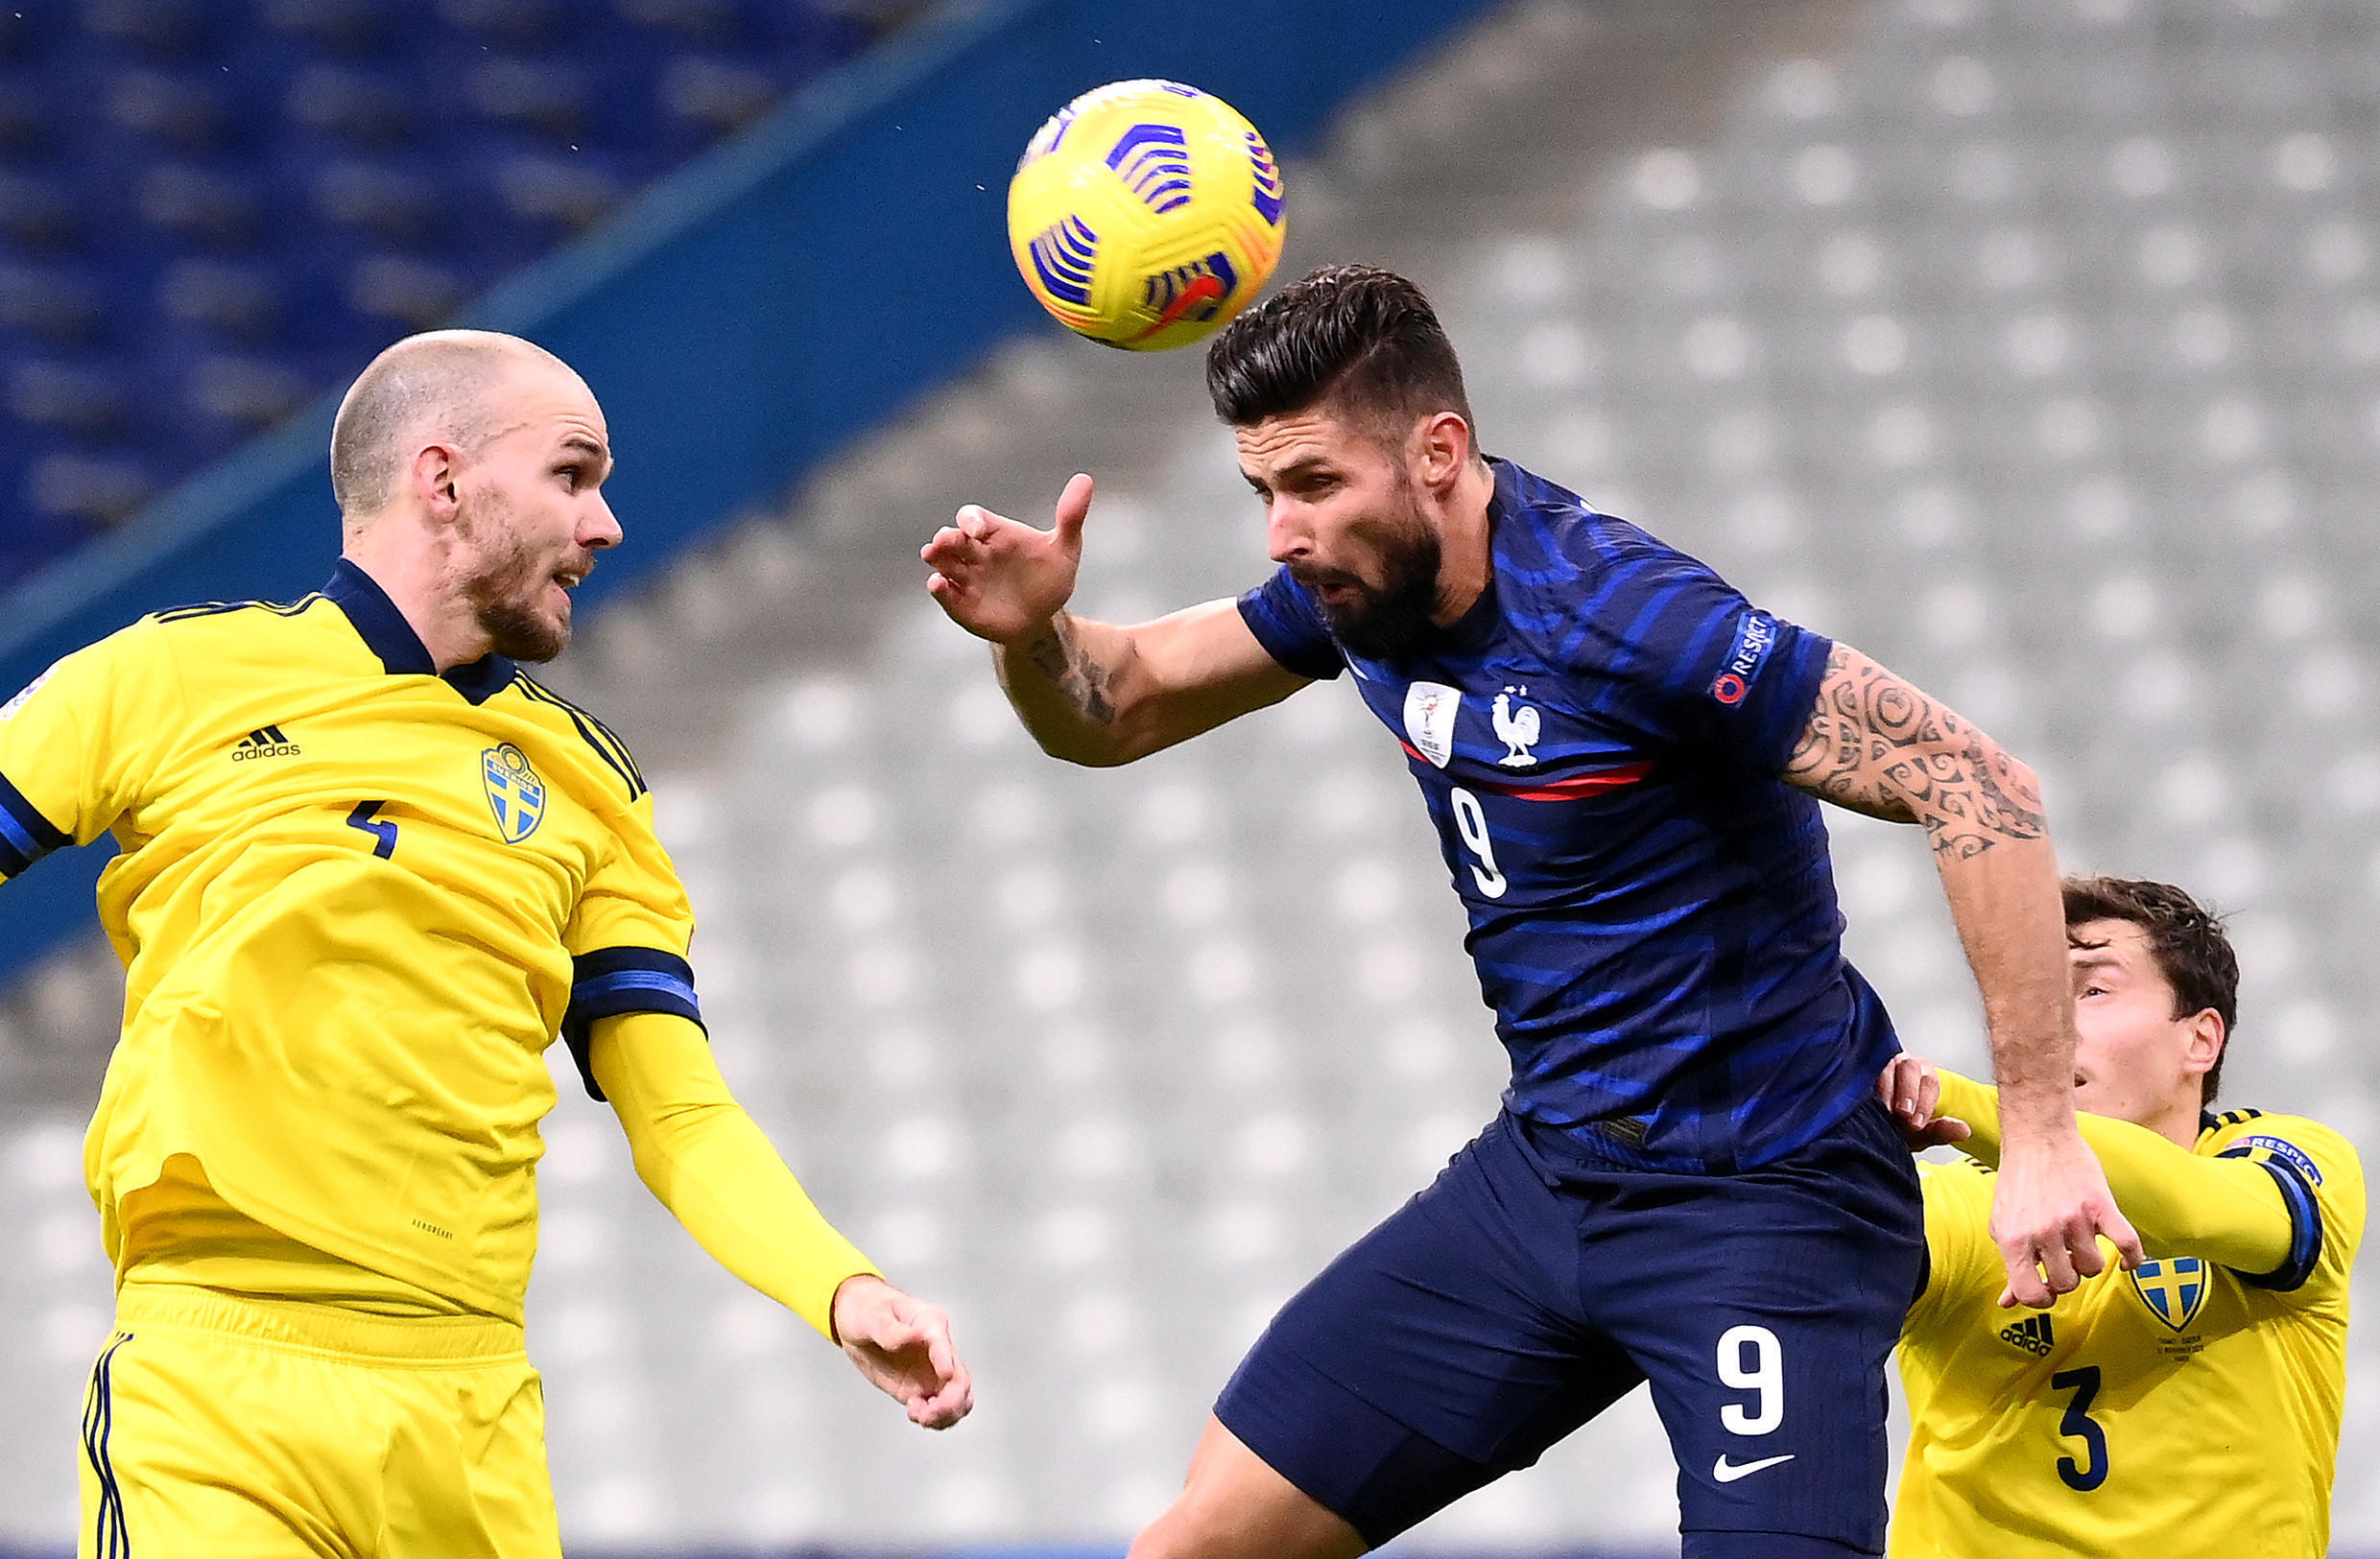 Olivier Giroud scored twice as France beat Sweden 4-2 in the Nations League